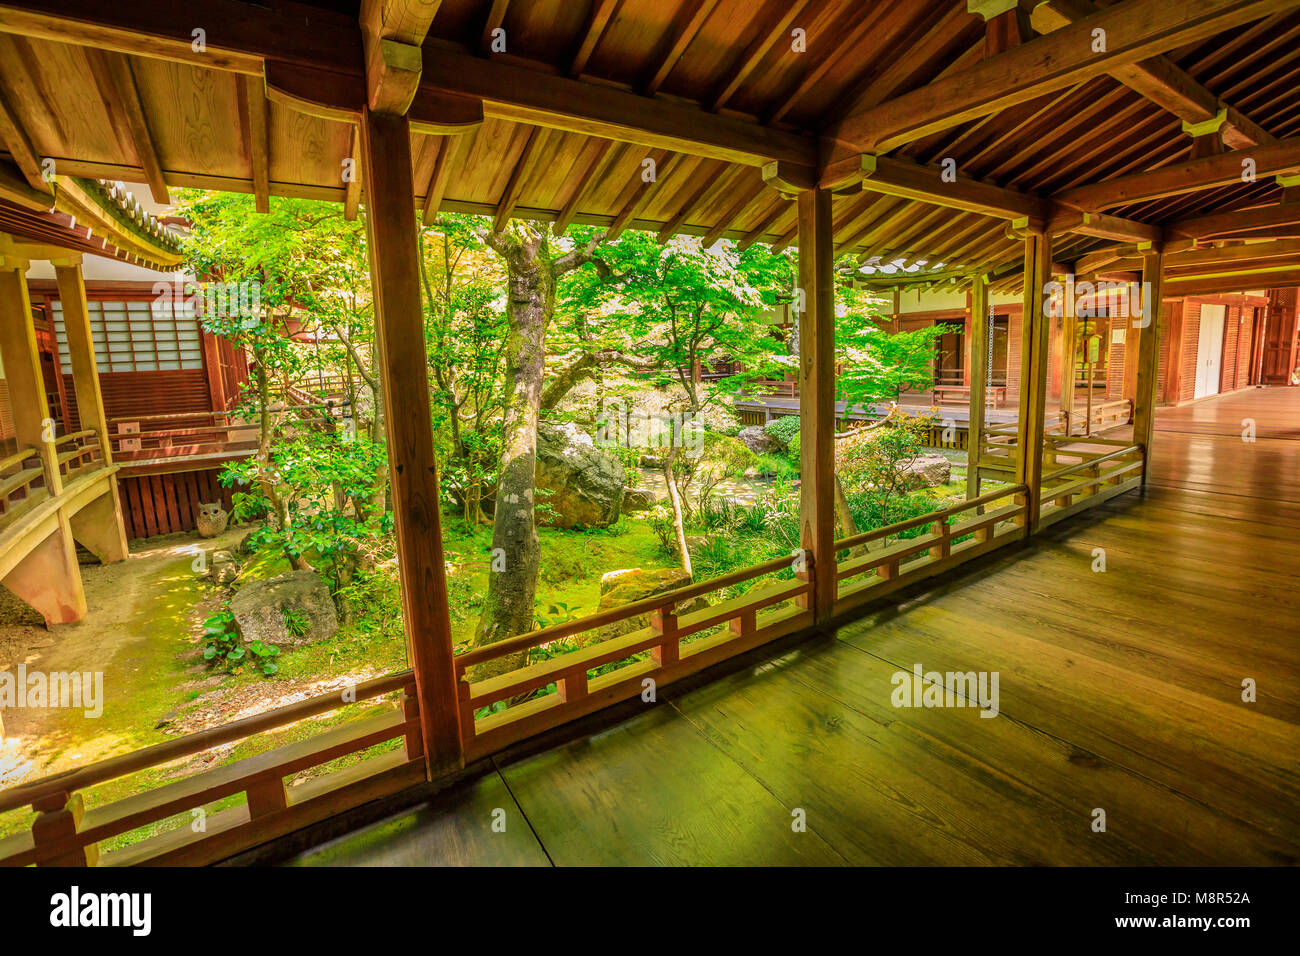 Kyoto, Japan - April 28, 2017: wood footpath corridors connecting buildings of Eikan-do Temple. Zenrin-ji is located - Stock Image